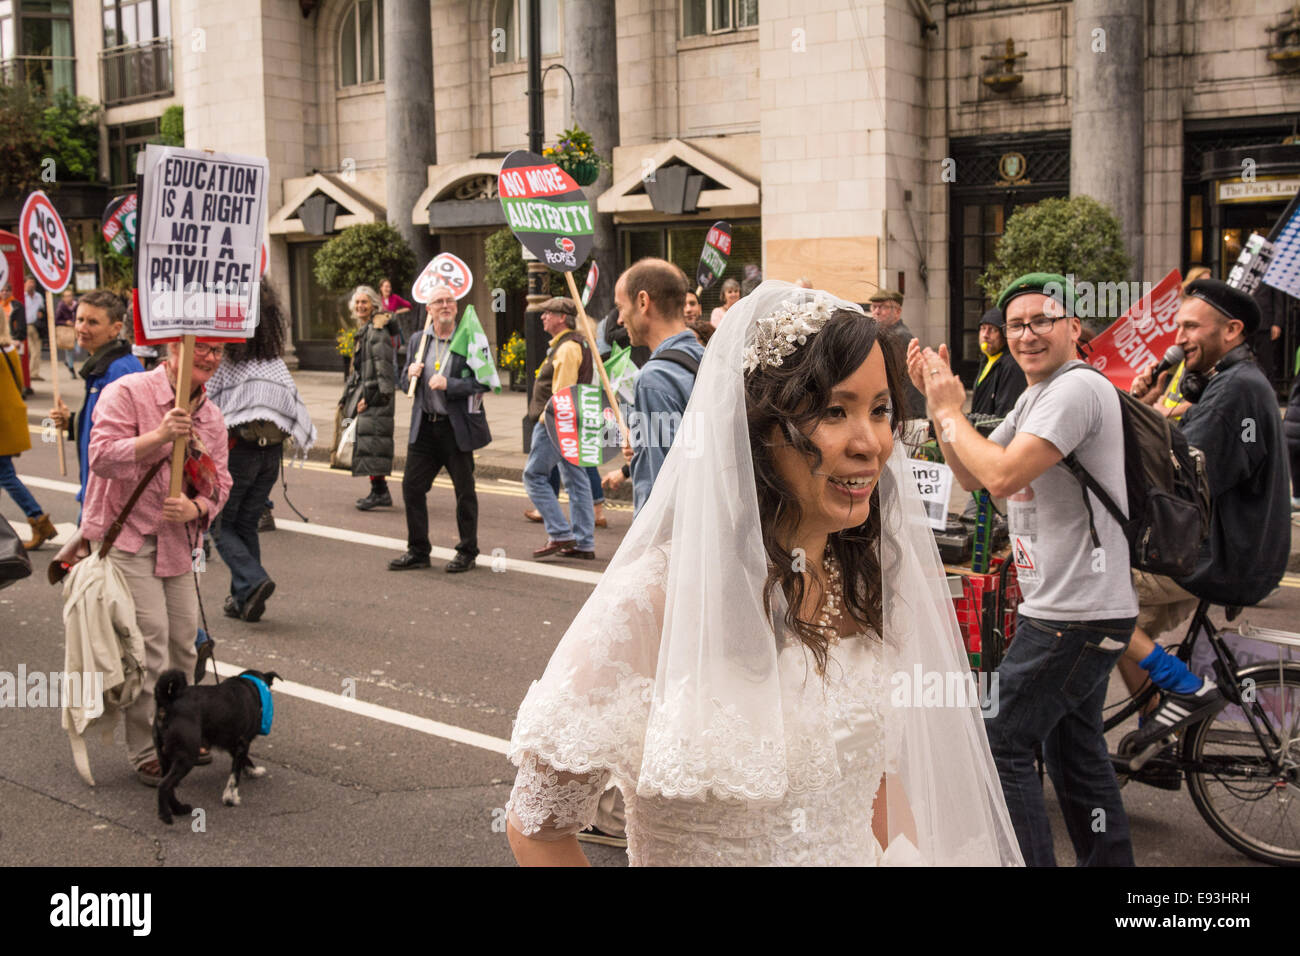 London, UK, 18th October 2014. A new bride gets caught up among crowds during the 'Britain needs a pay rise' - Stock Image